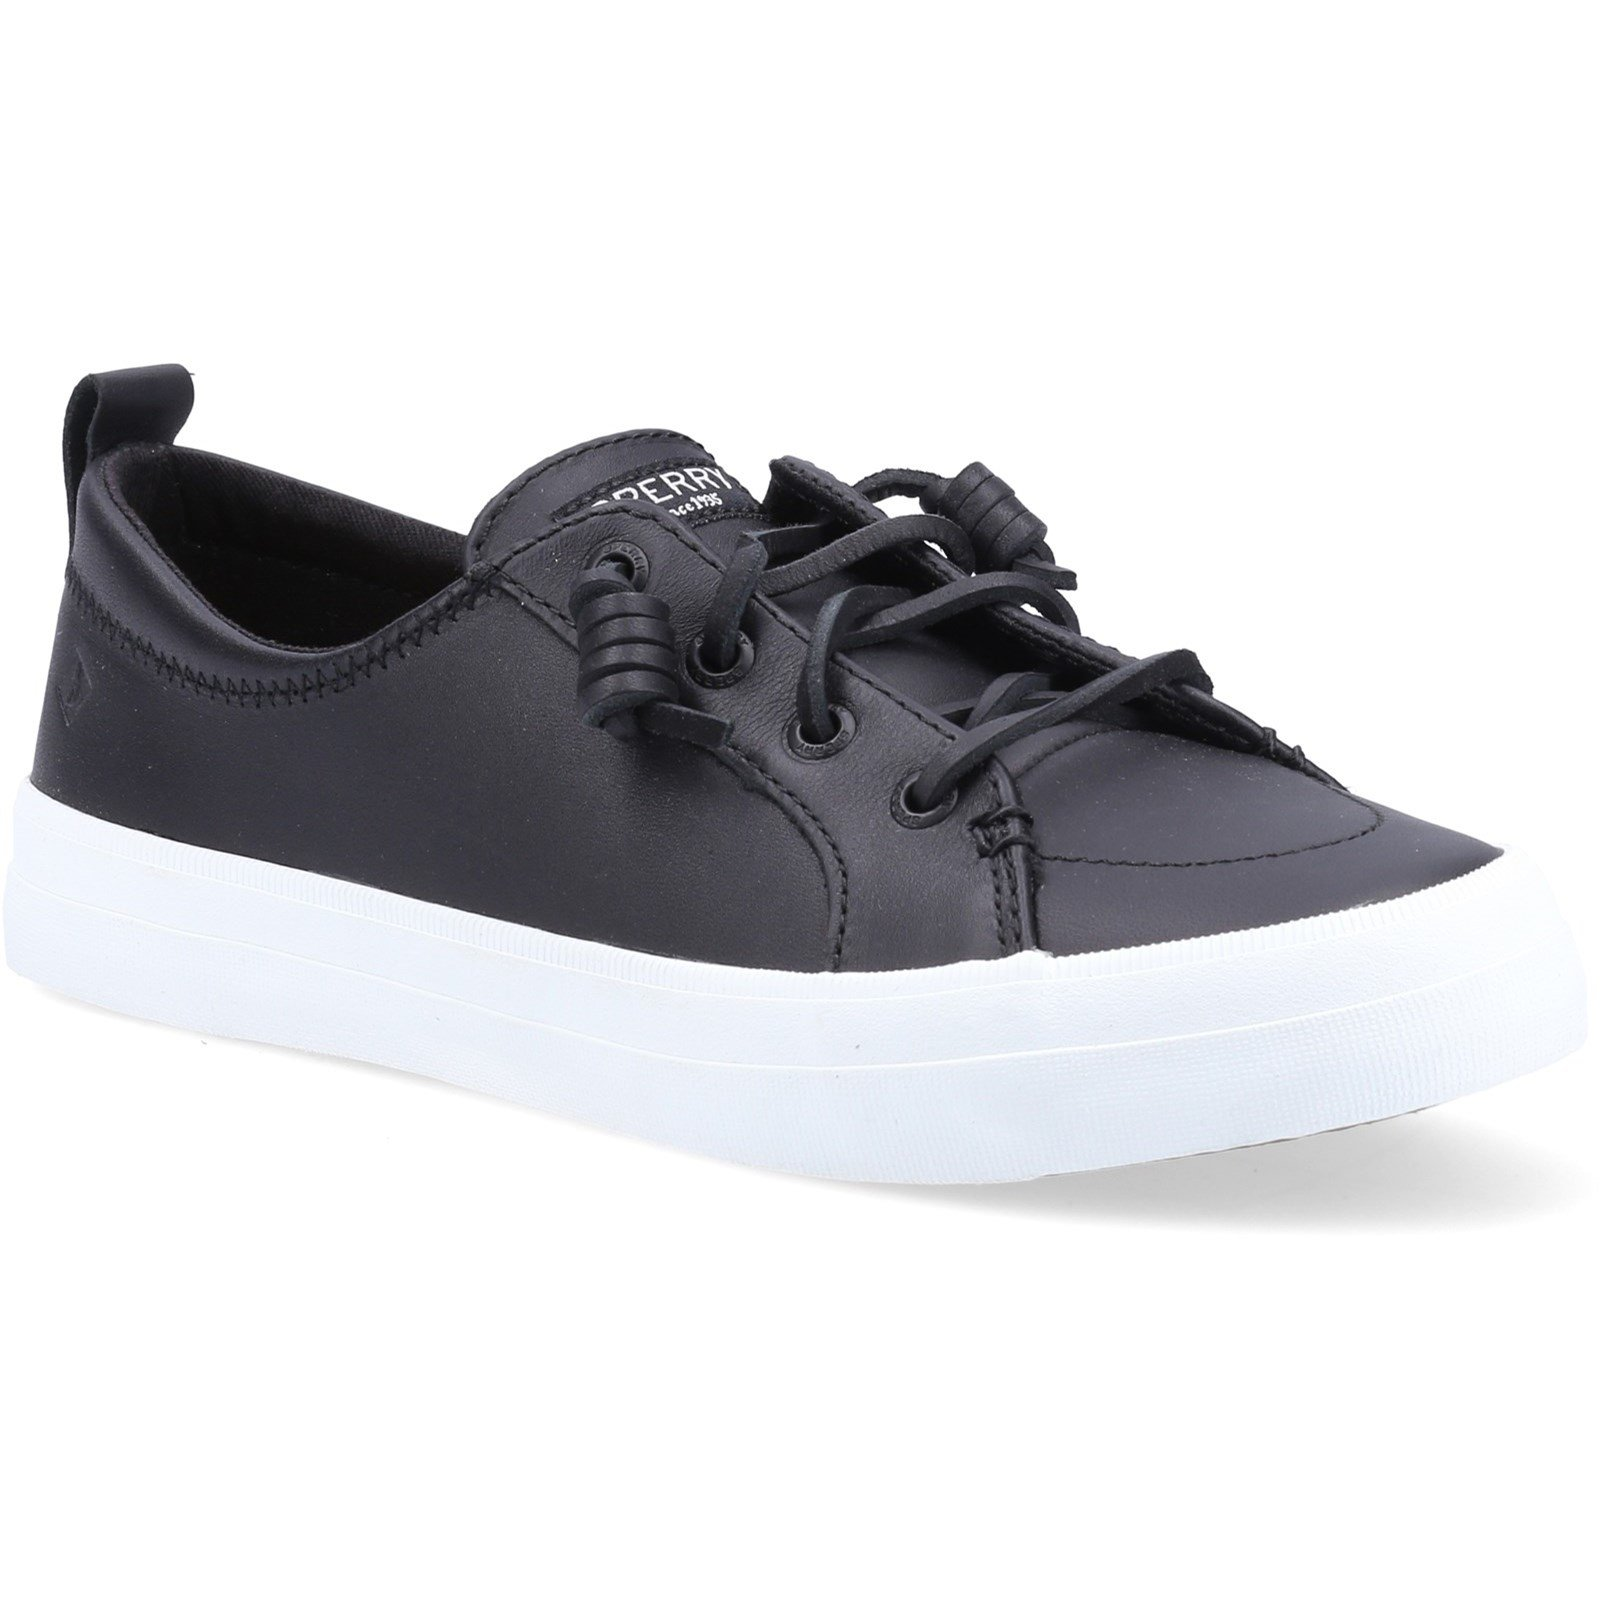 Sperry Women's Crest Vibe Leather Trainers Black 32404 - Black 6